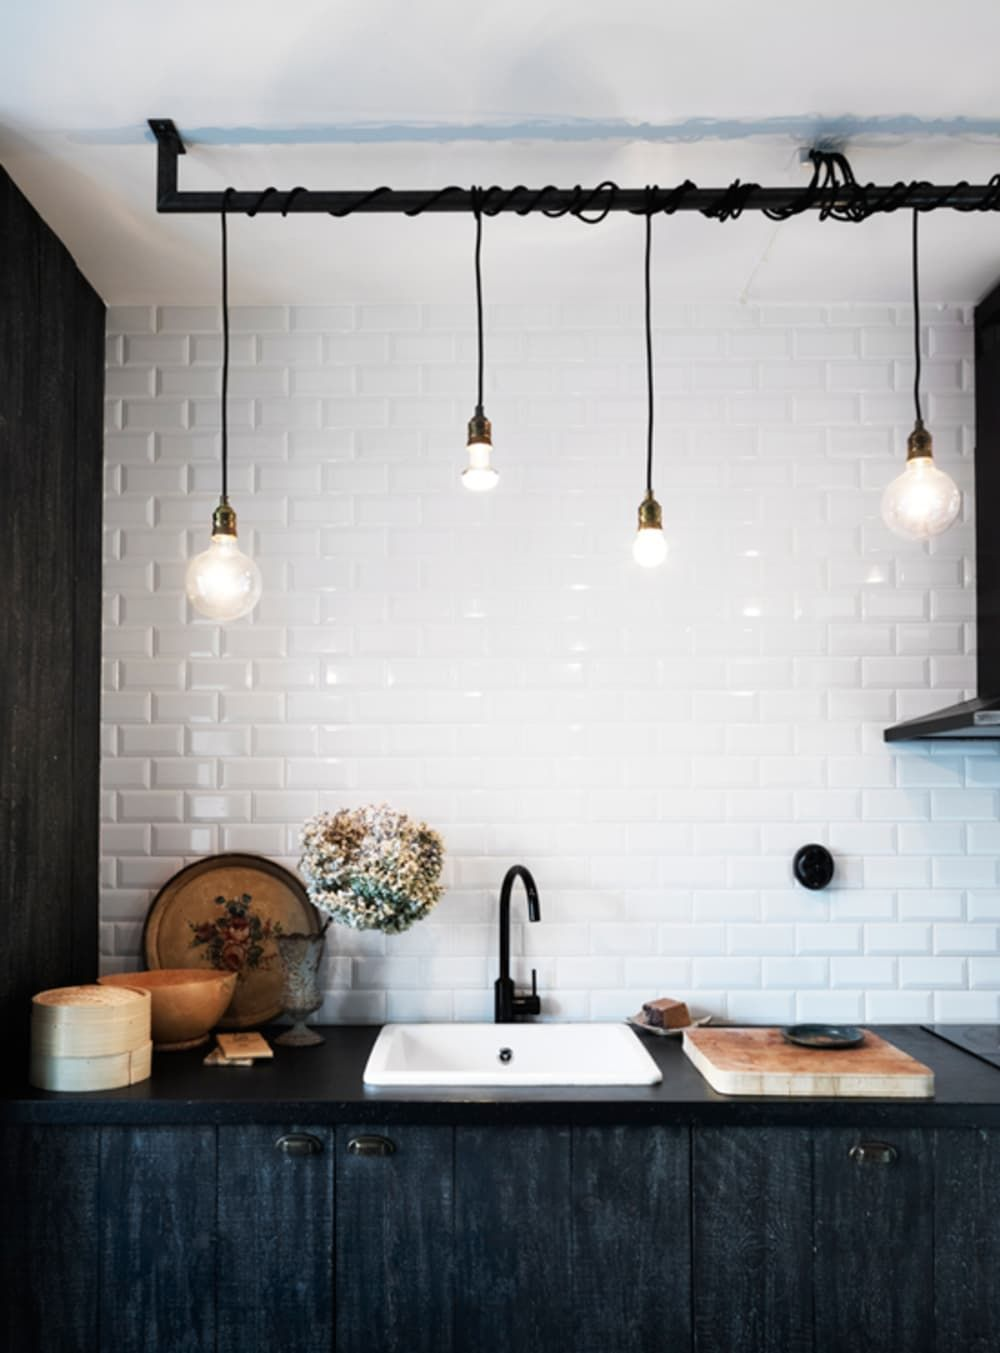 11 Brilliant Solutions To Make Exposed Pipes Chic With Images Kitchen Lamps Kitchen Lighting Fixtures Ceiling Scandinavian Kitchen Design